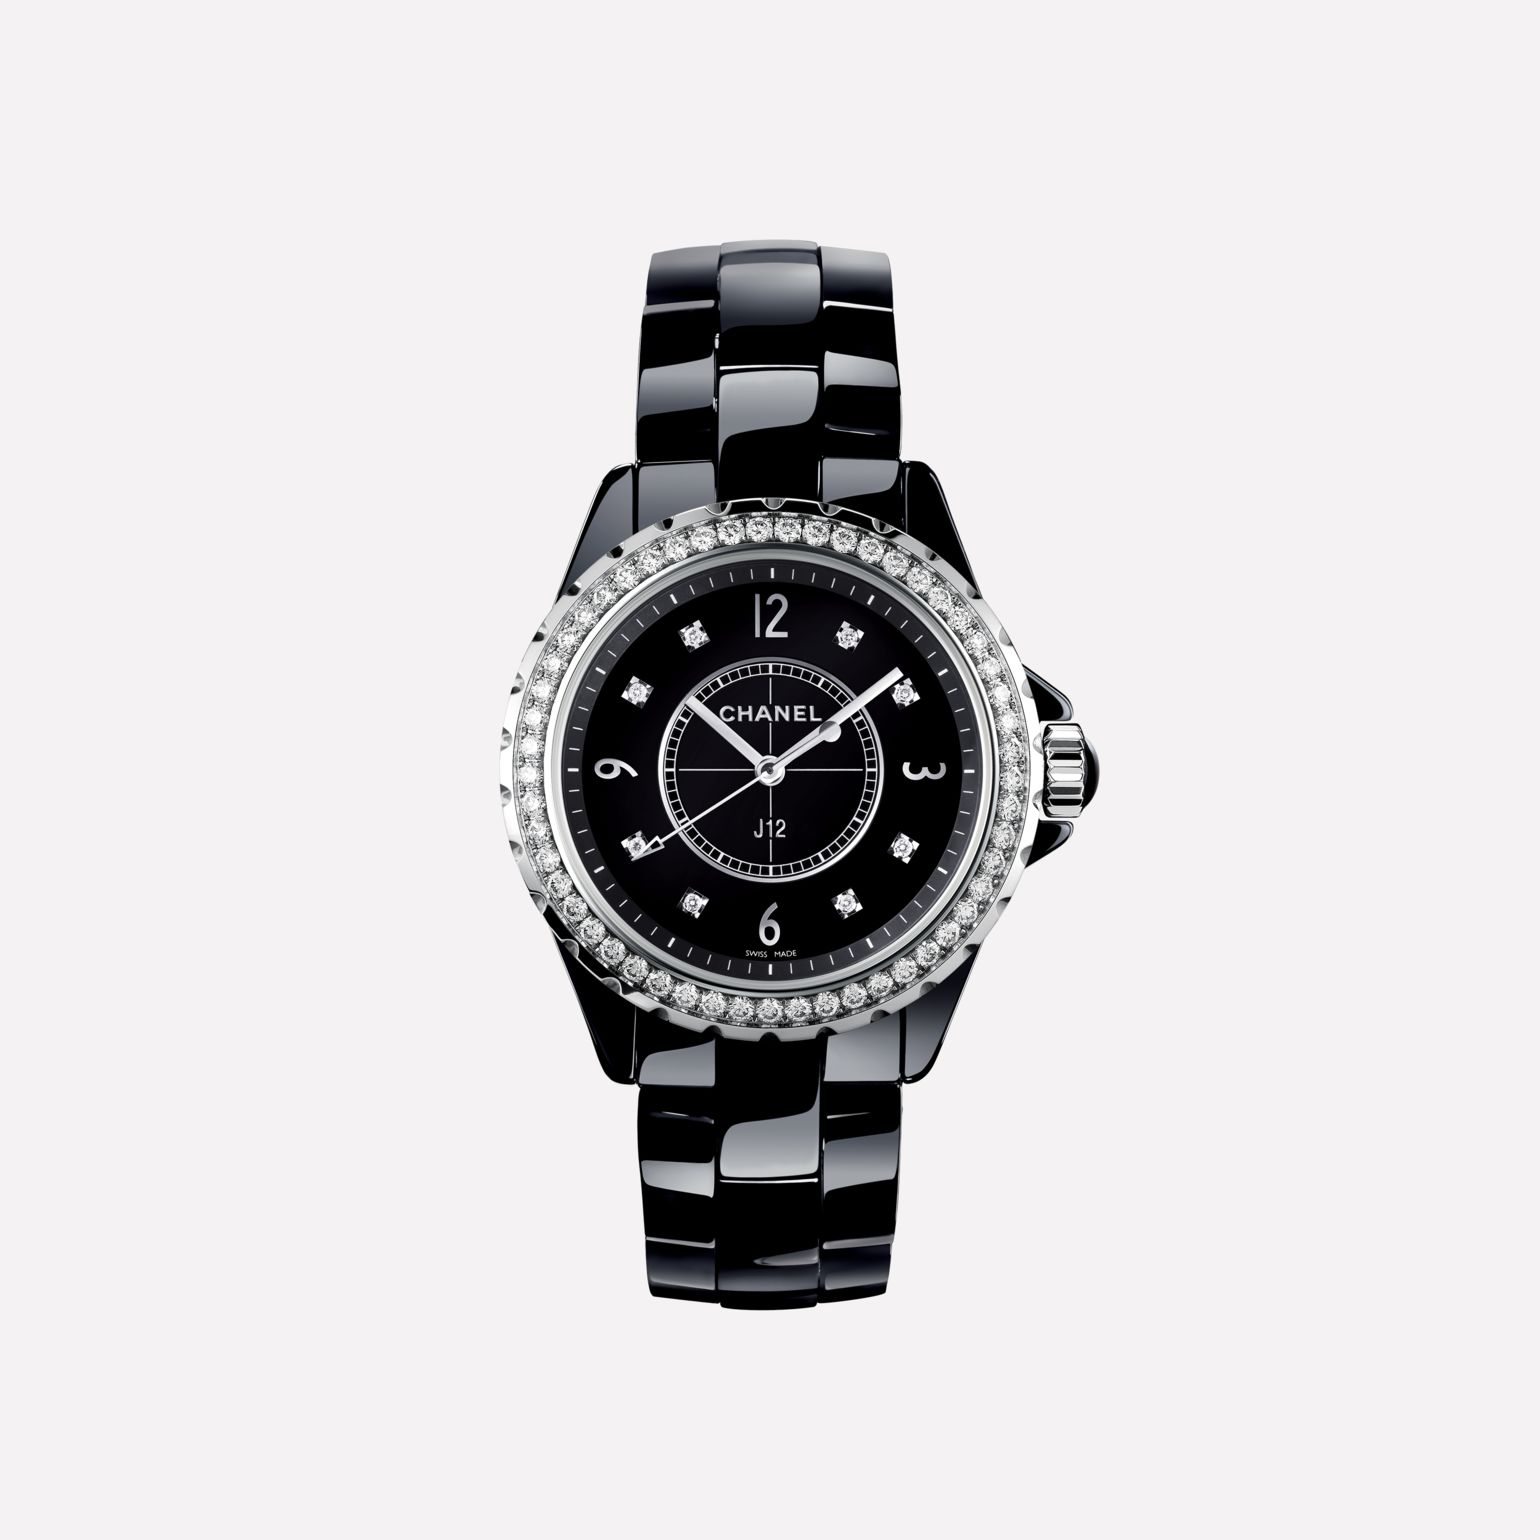 J12 Watch Black highly-resistant ceramic and steel, brilliant-cut diamond bezel and indicators